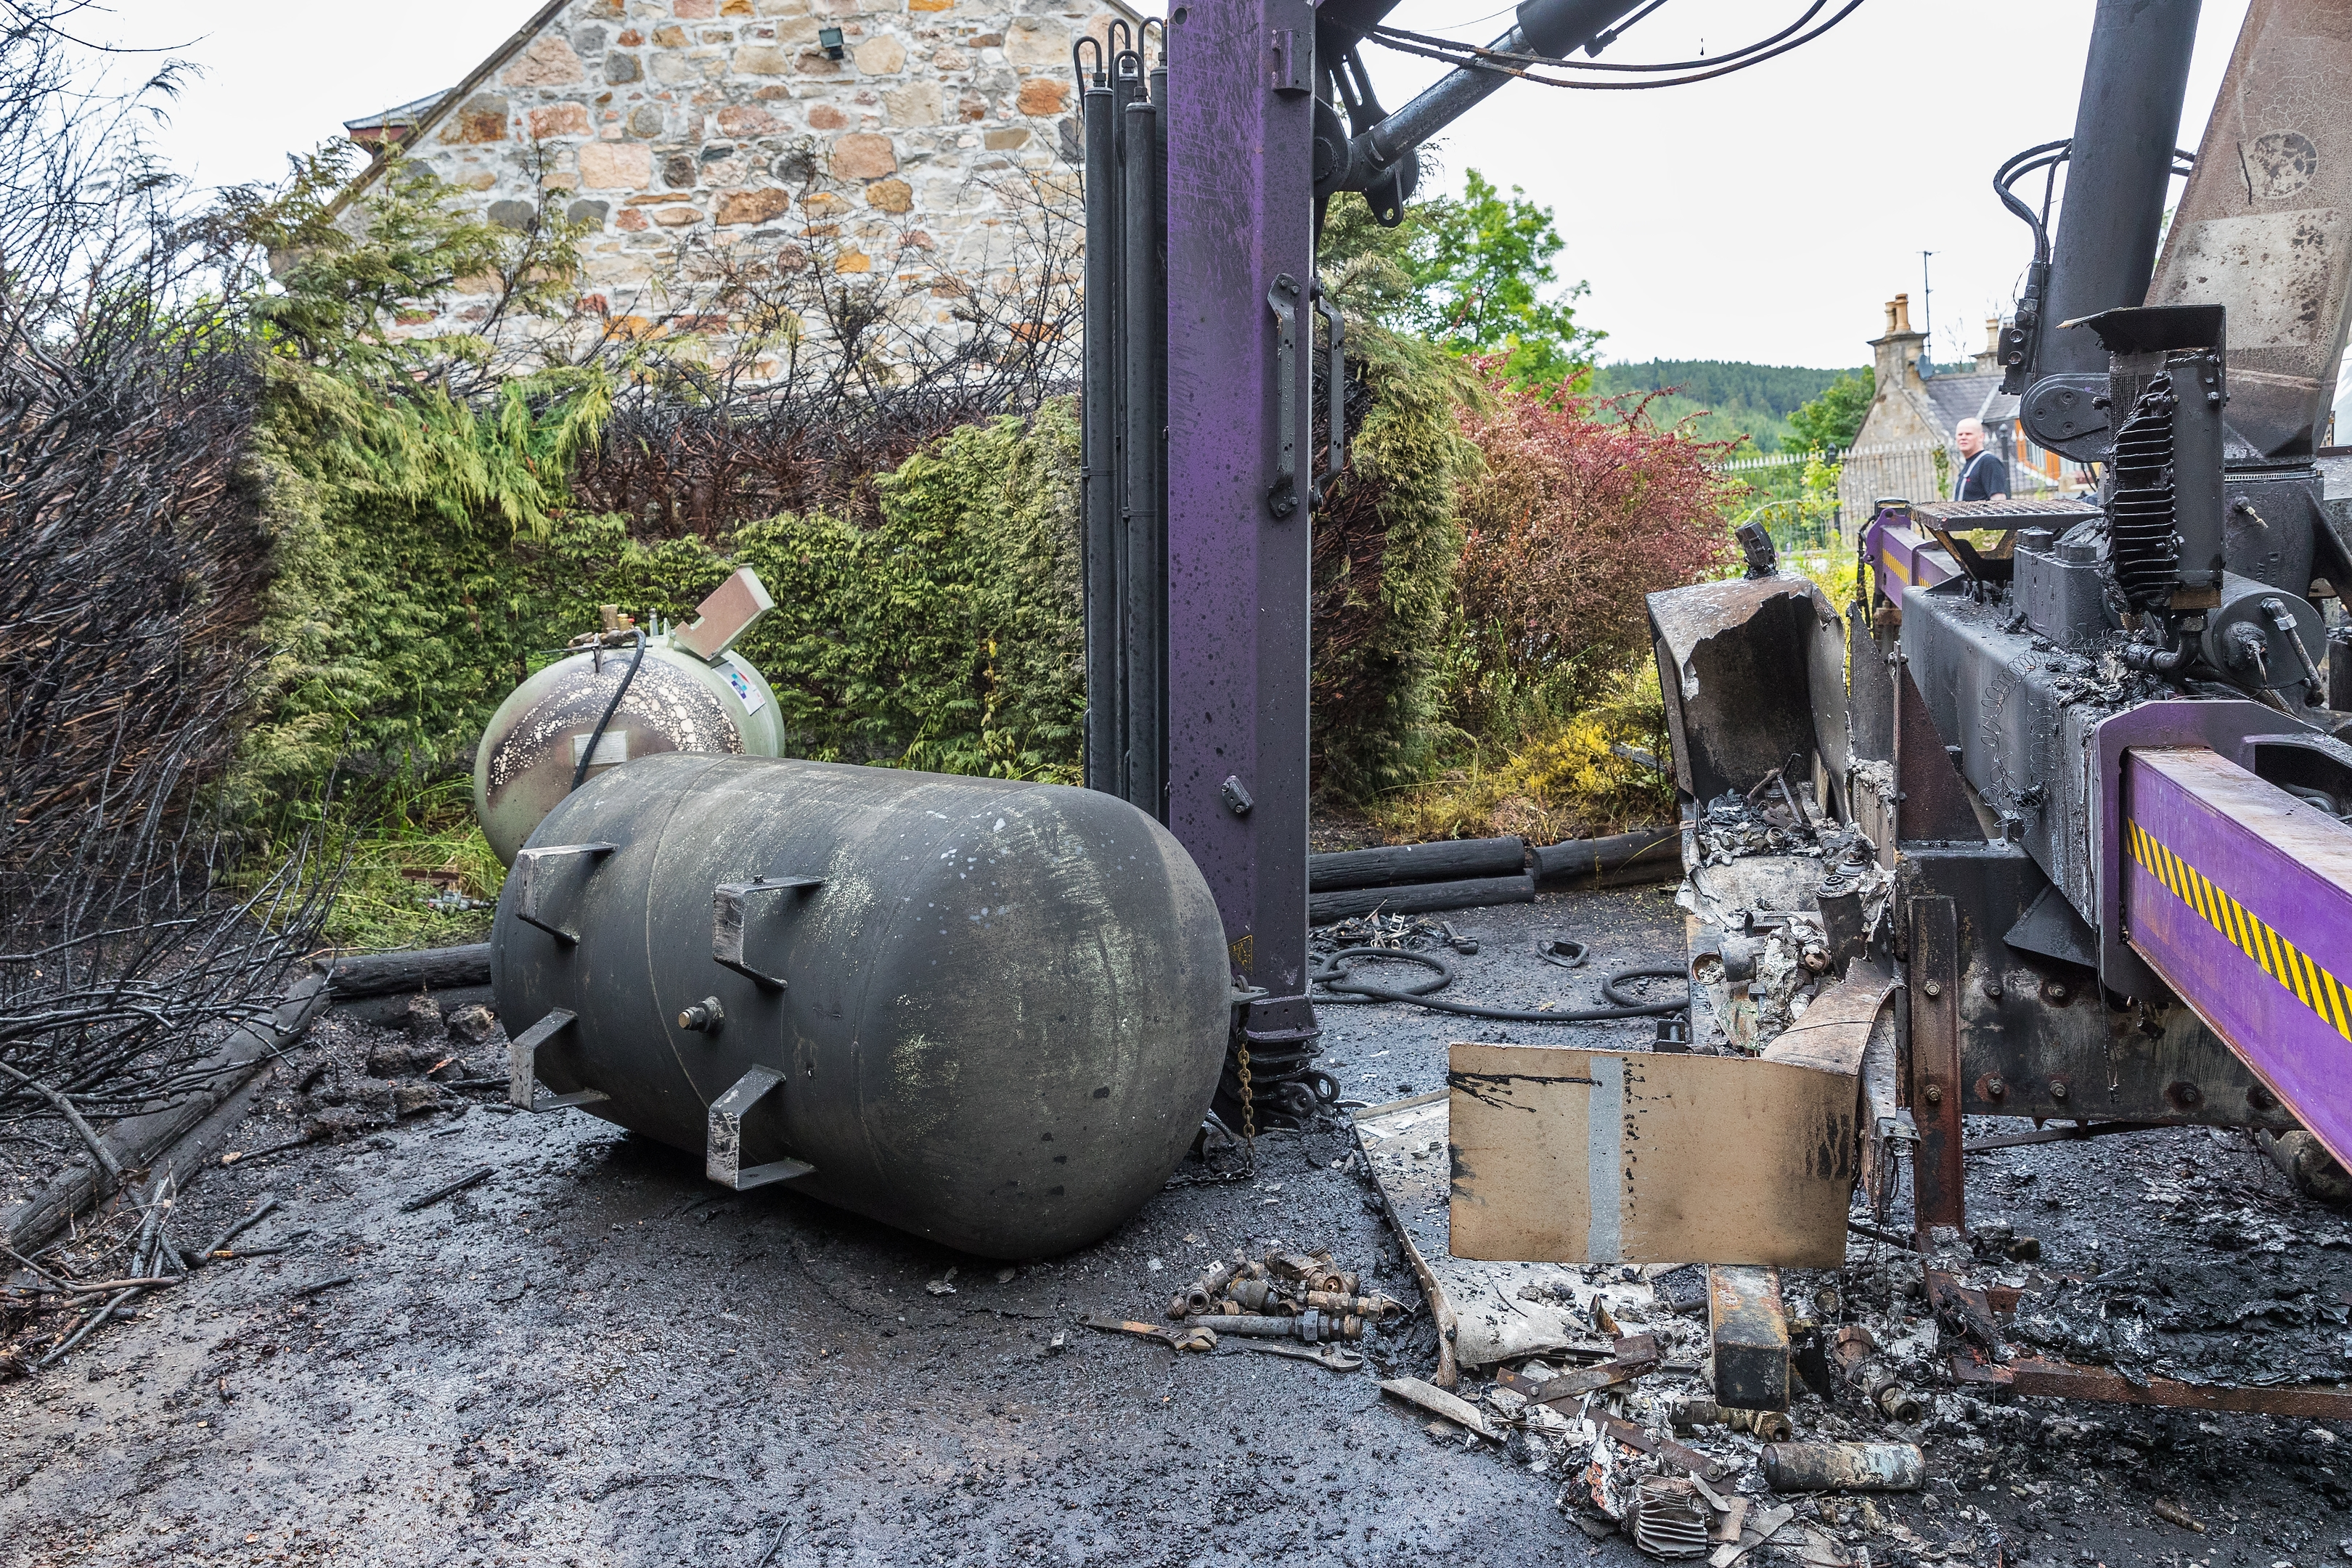 The gas tank where the explosion occurred.